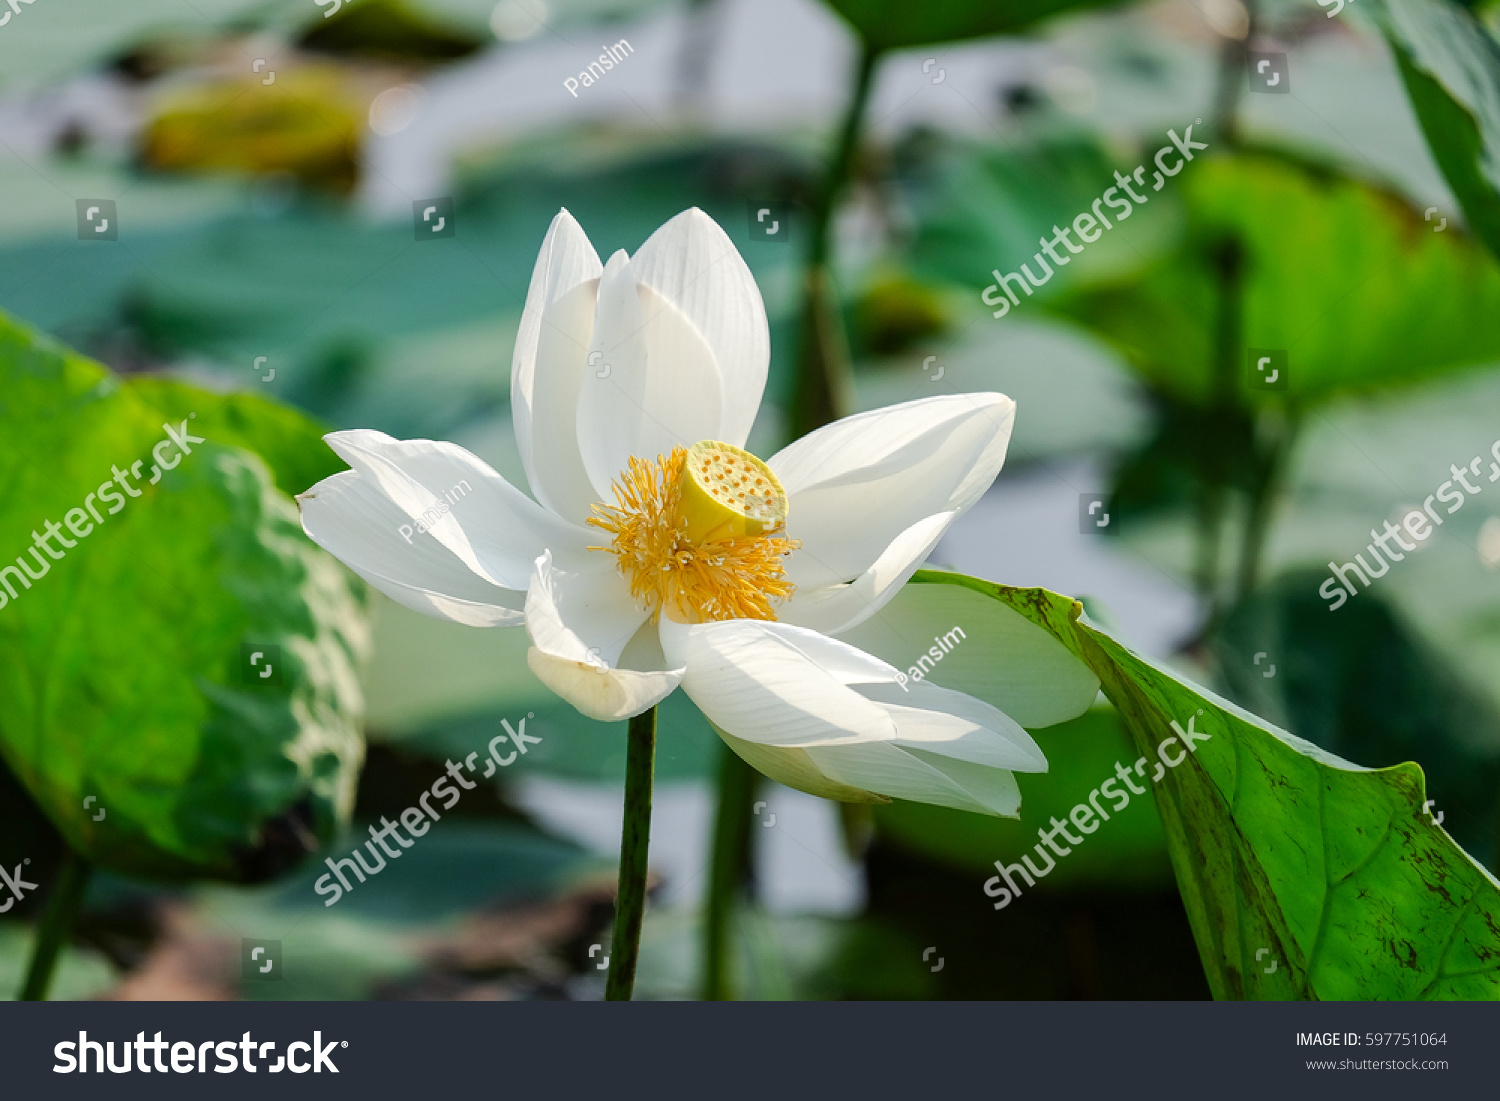 White lotus flower with green leaf background ez canvas id 597751064 izmirmasajfo